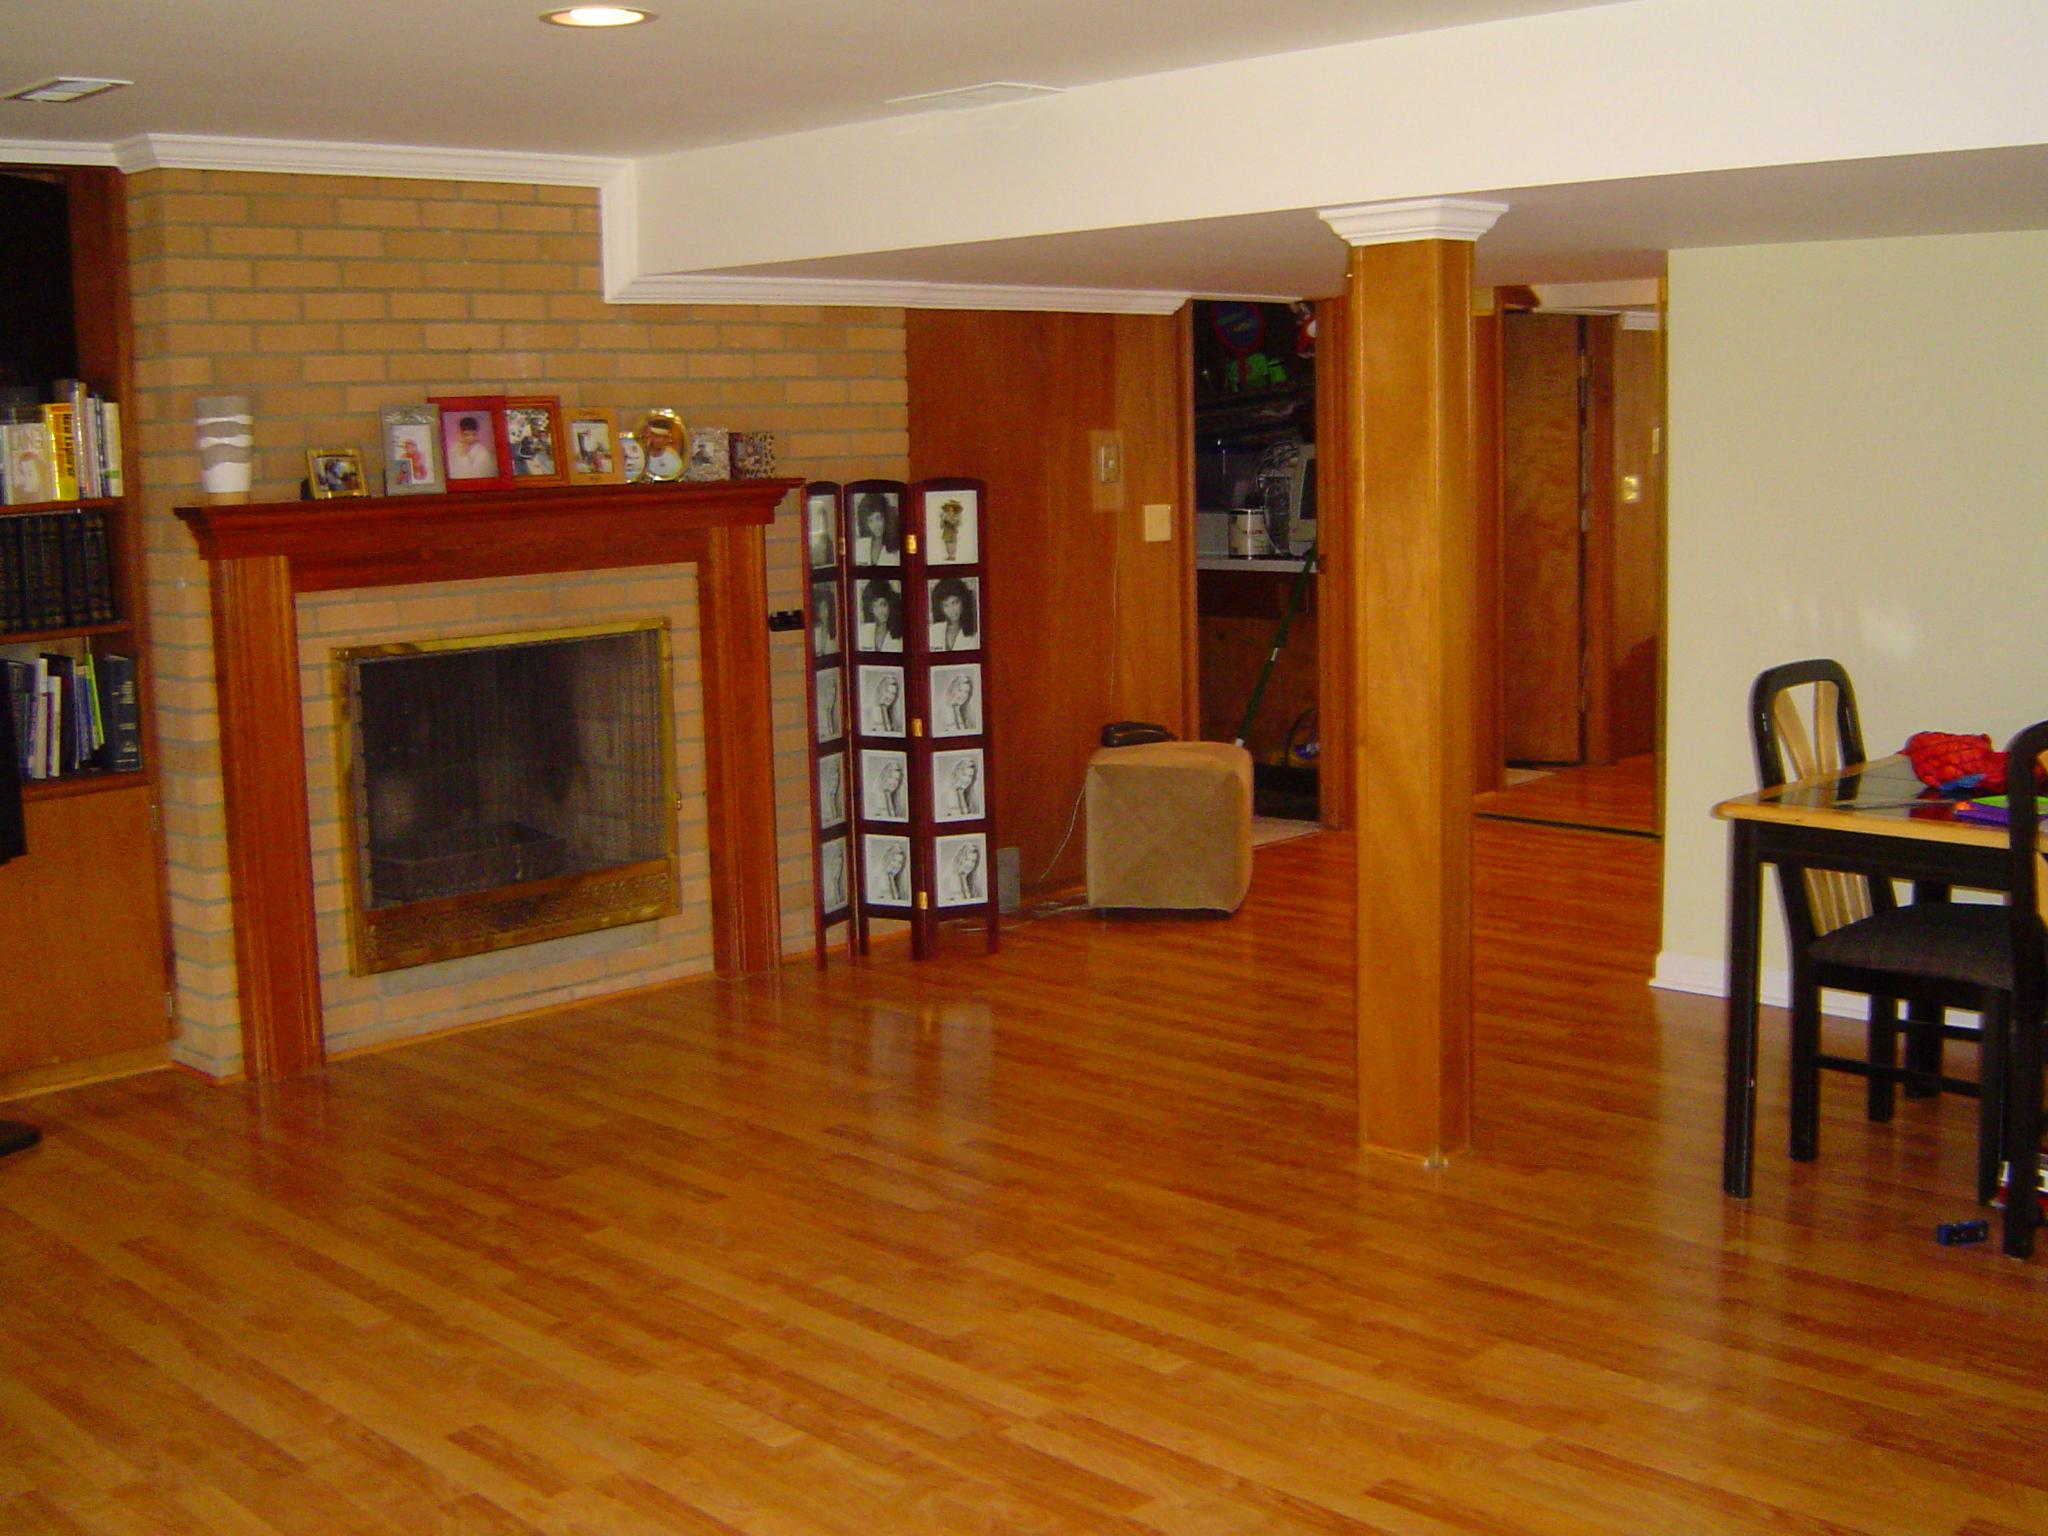 Basement flooring ideas gharexpert Basement flooring ideas